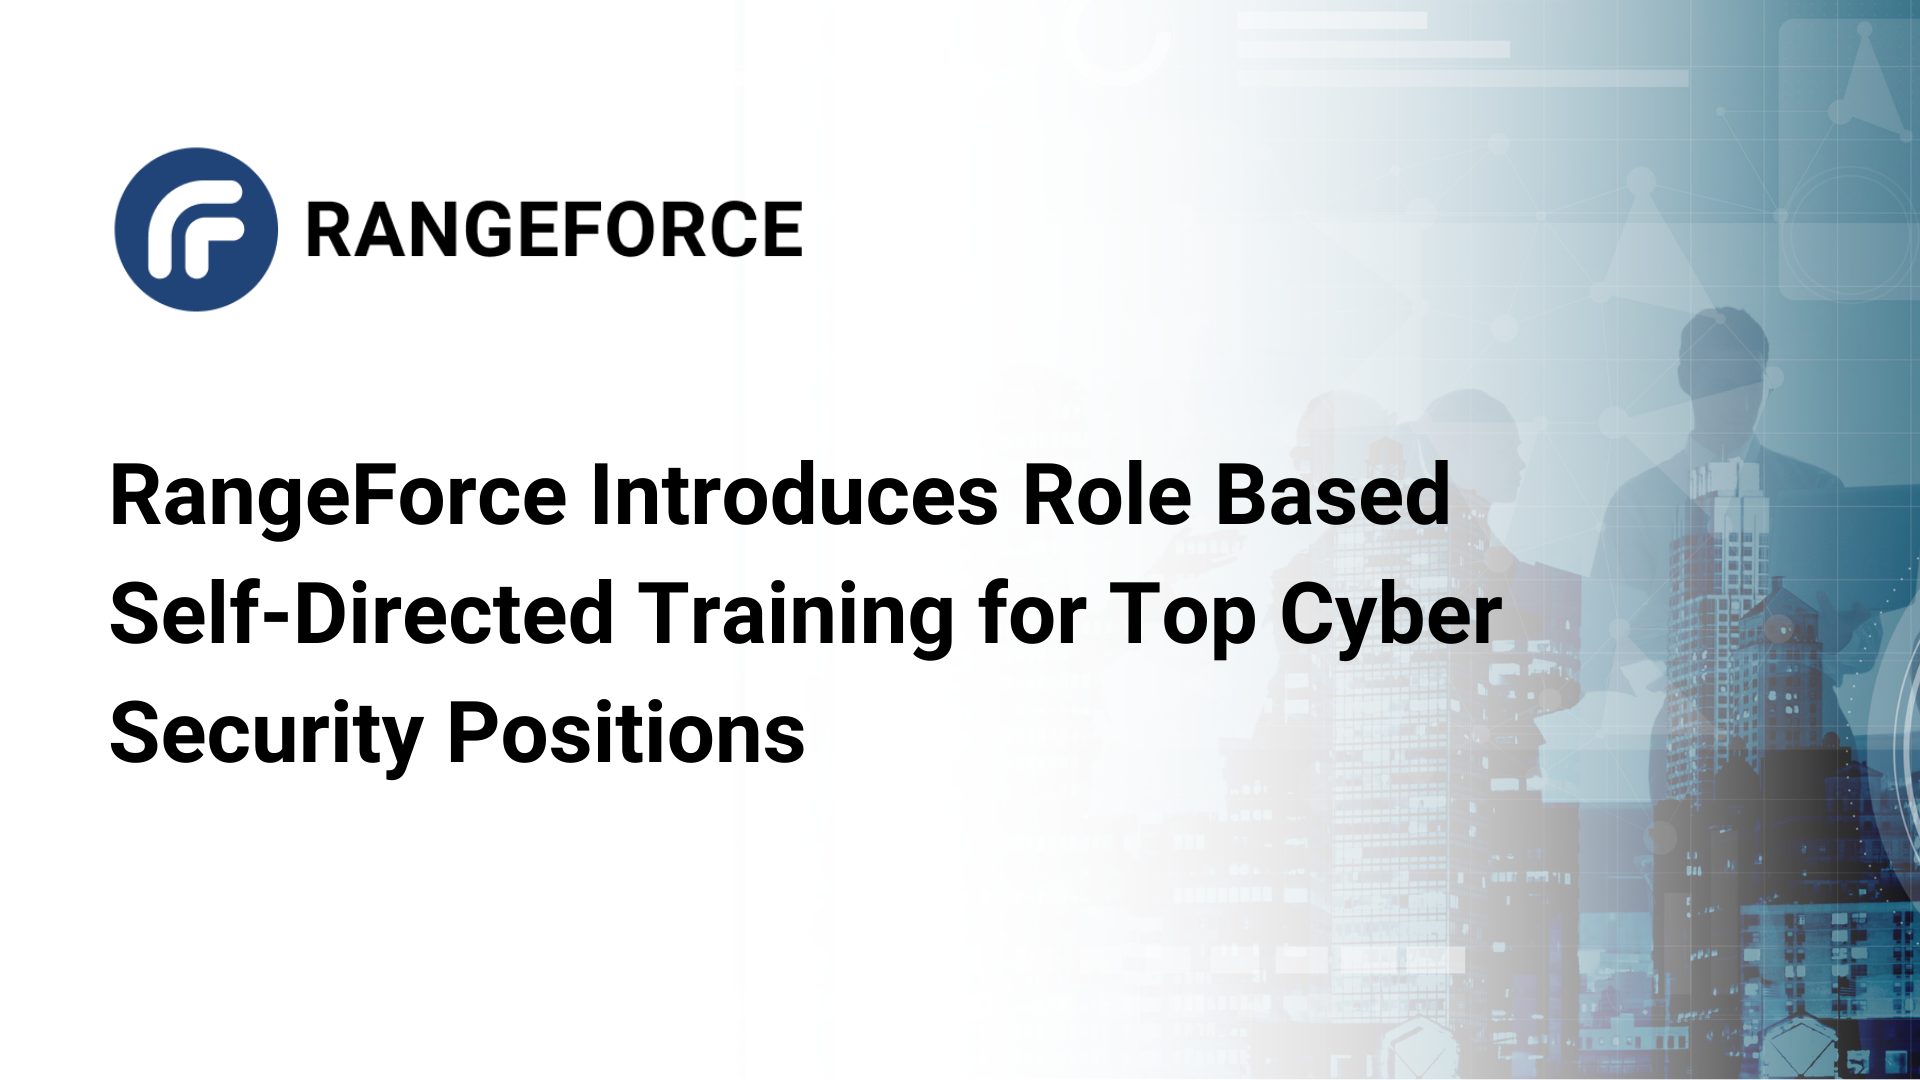 RangeForce Introduces Role Based Self-Directed Training for Top Cyber Security Positions